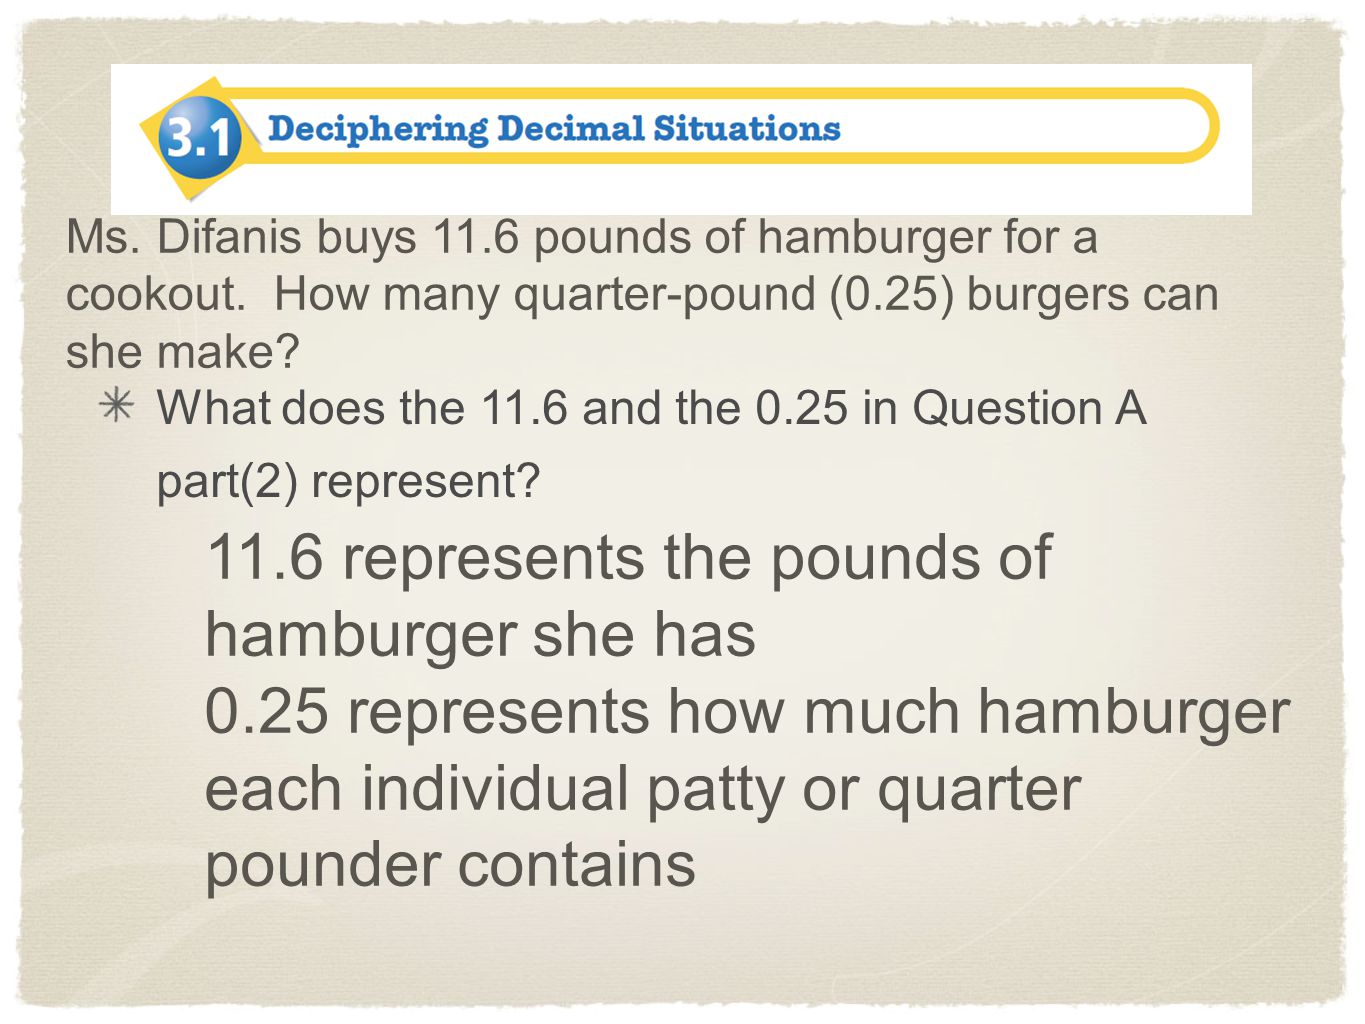 11.6 represents the pounds of hamburger she has